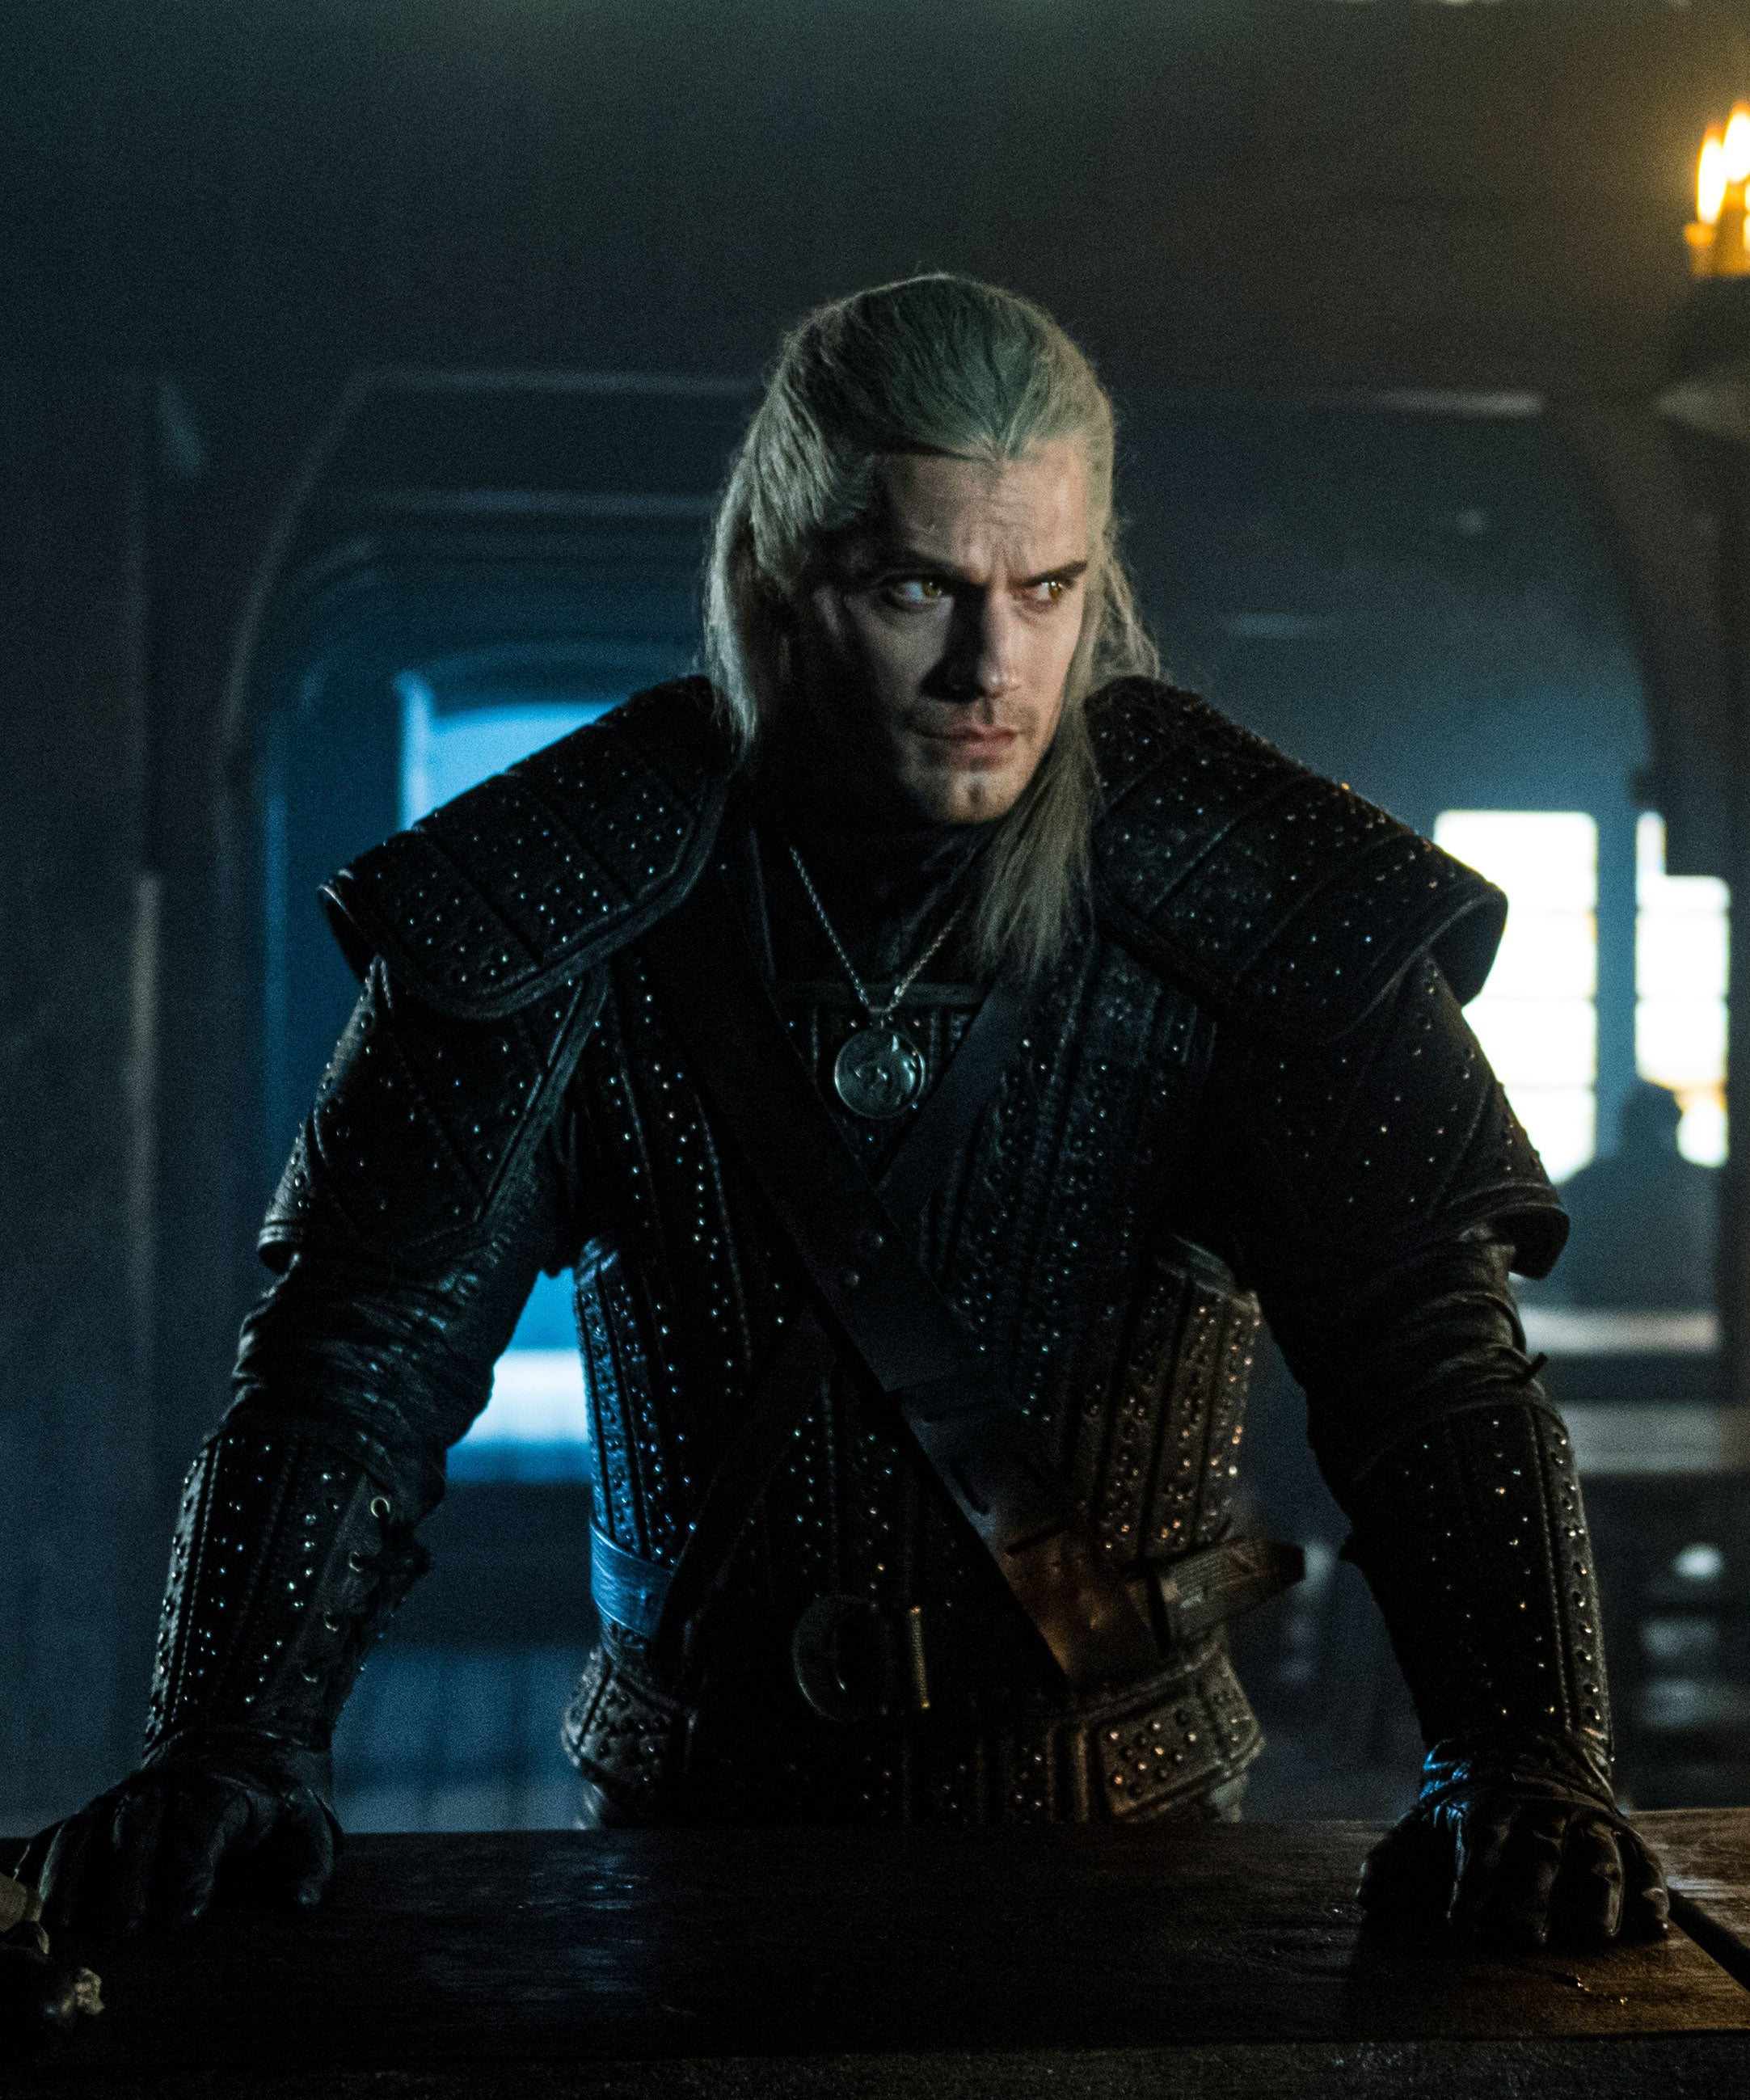 The Witcher Streaming Serie : witcher, streaming, serie, About, Witcher, Season, Netflix